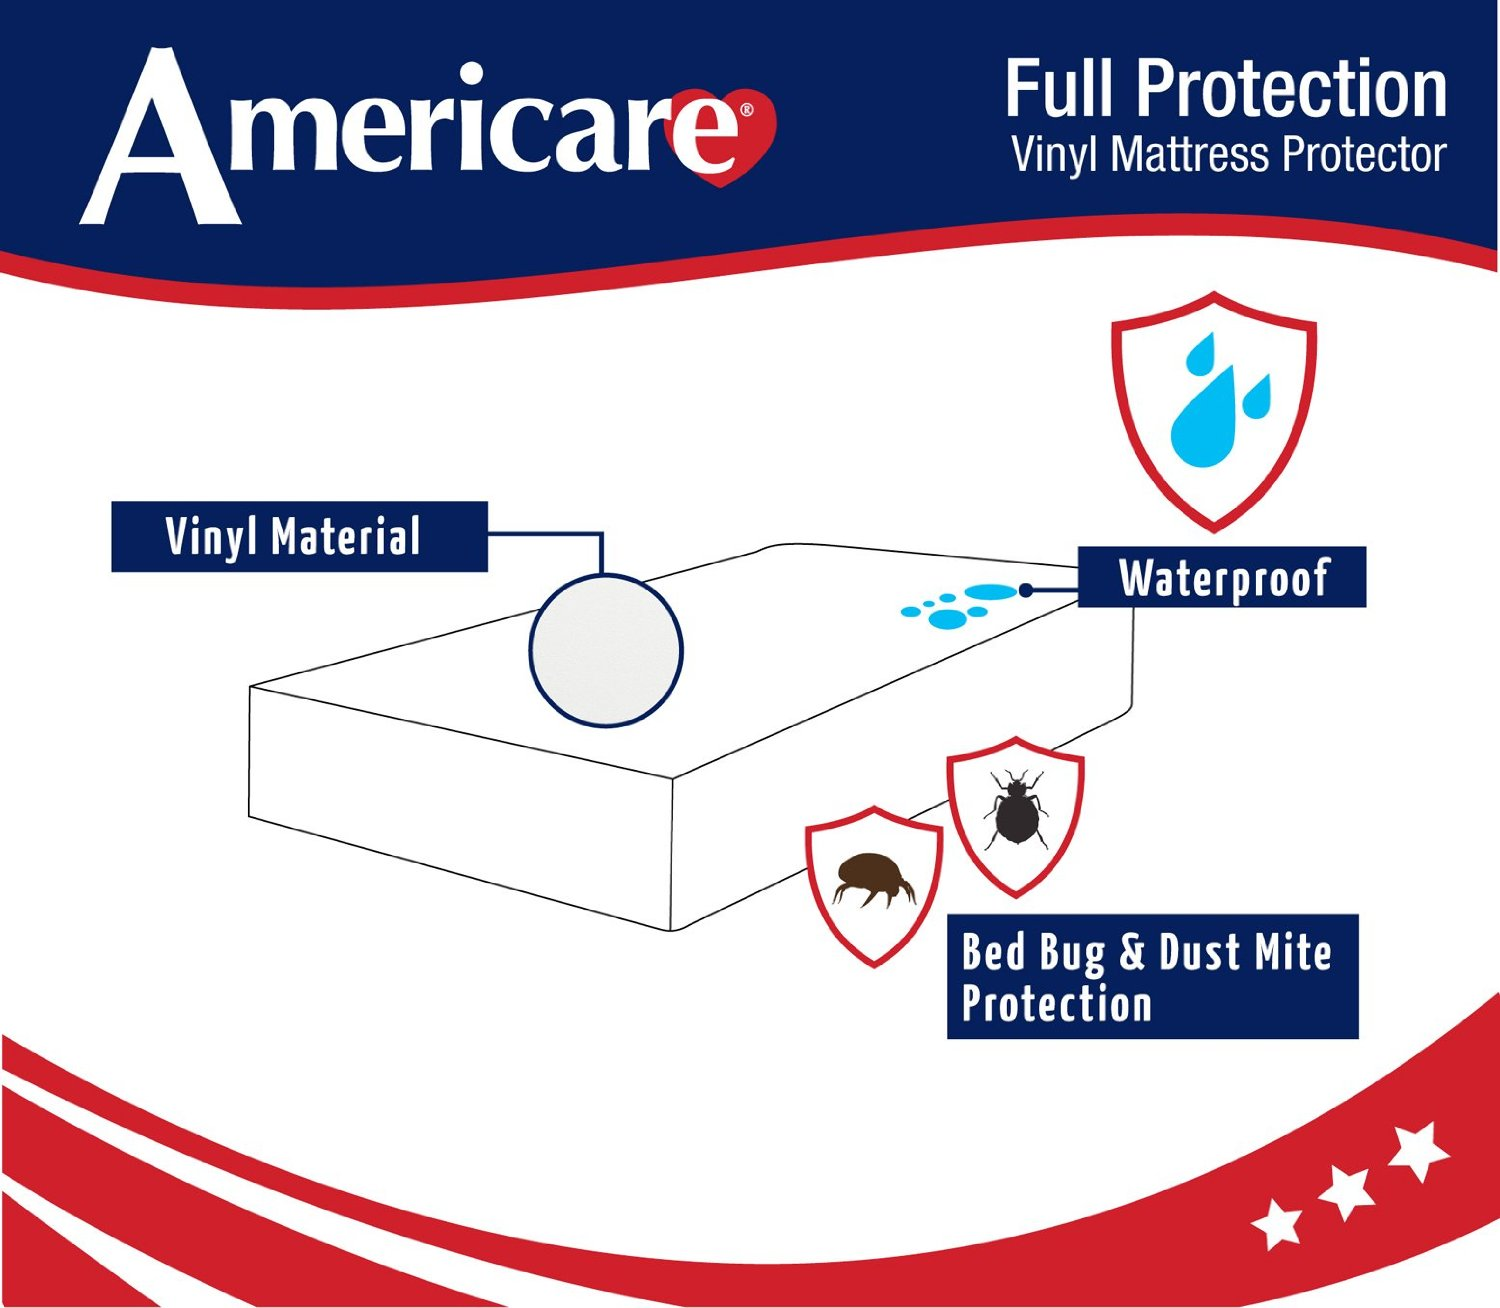 Mattress Protector From Urine Americare Vinyl Fitted Mattress Protector | Happy Homemaker